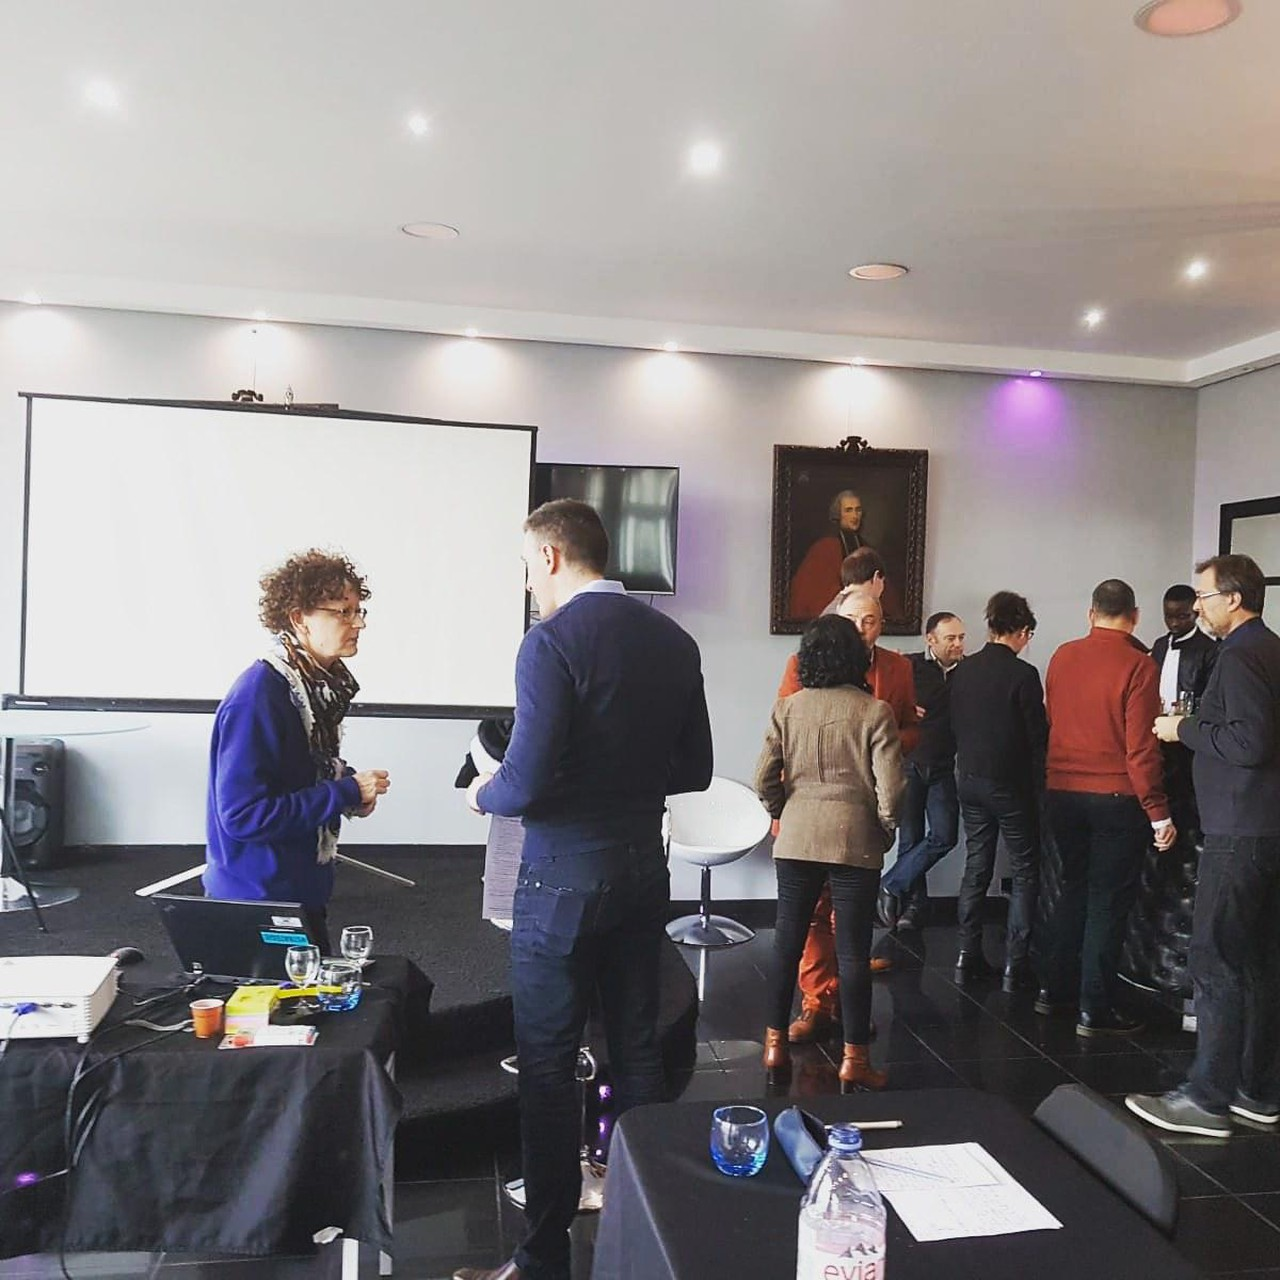 Paris training rooms Private residence Showroom for day events image 0